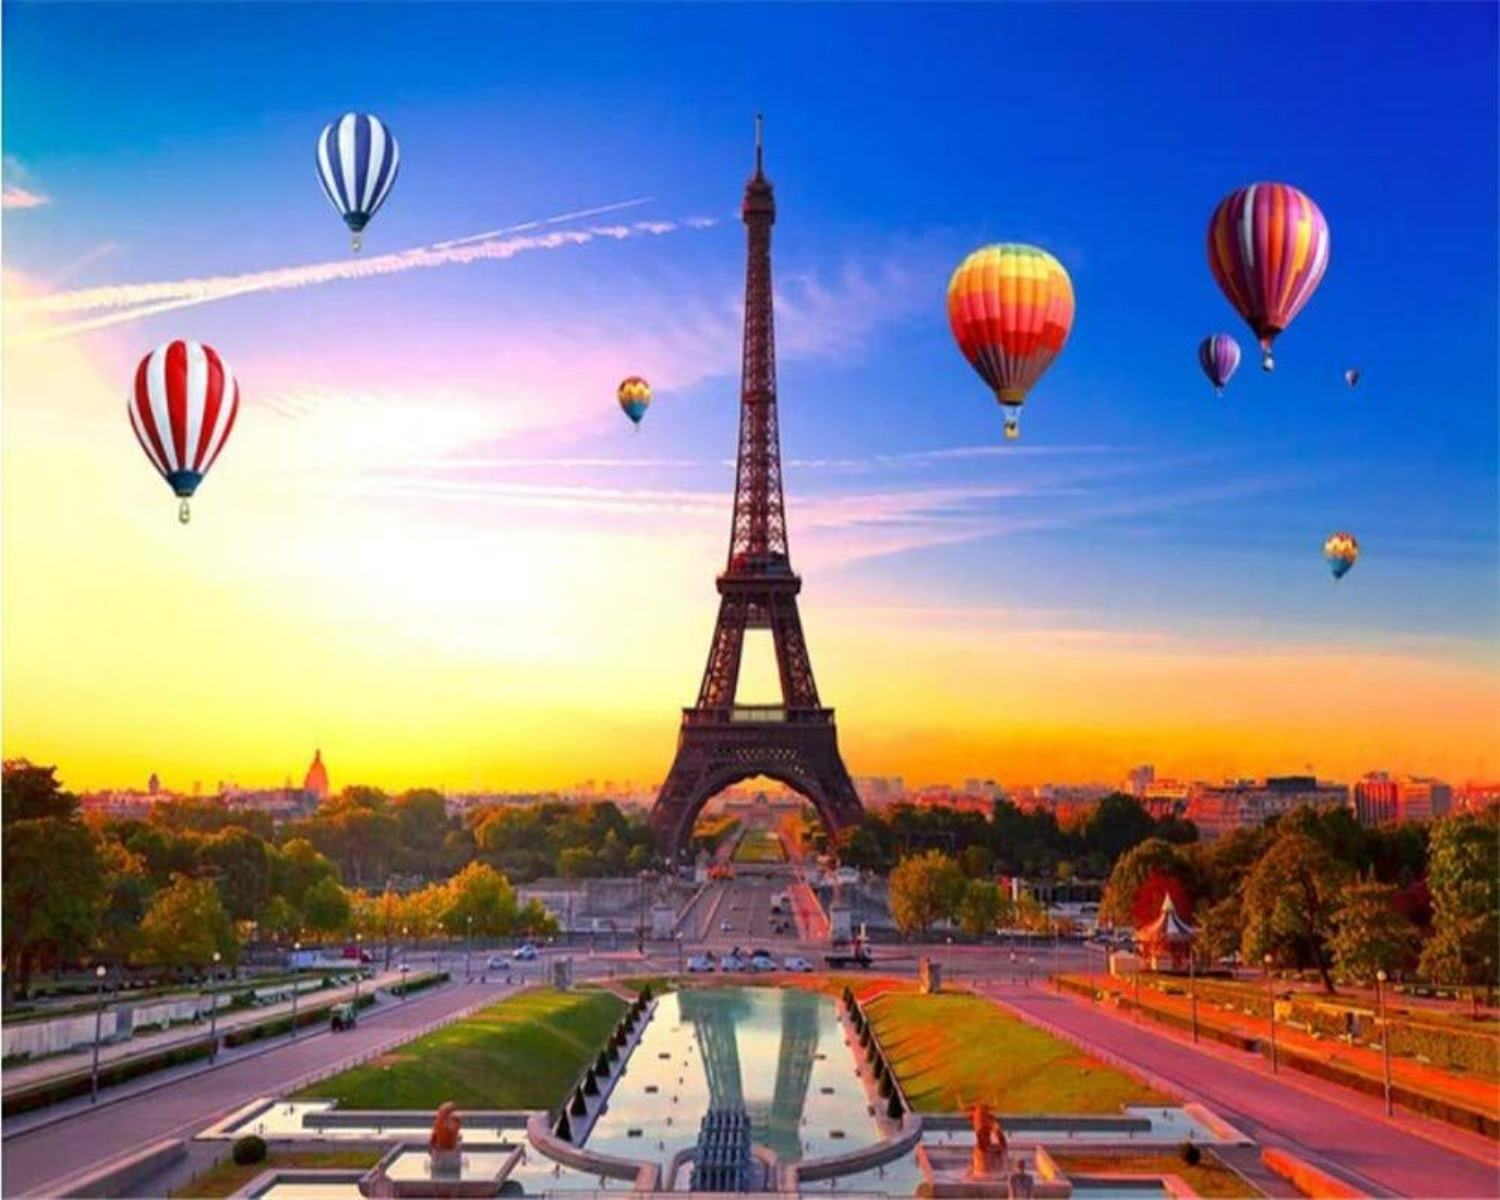 Paris Switzerland Group Tour Packages from Mumbai, India